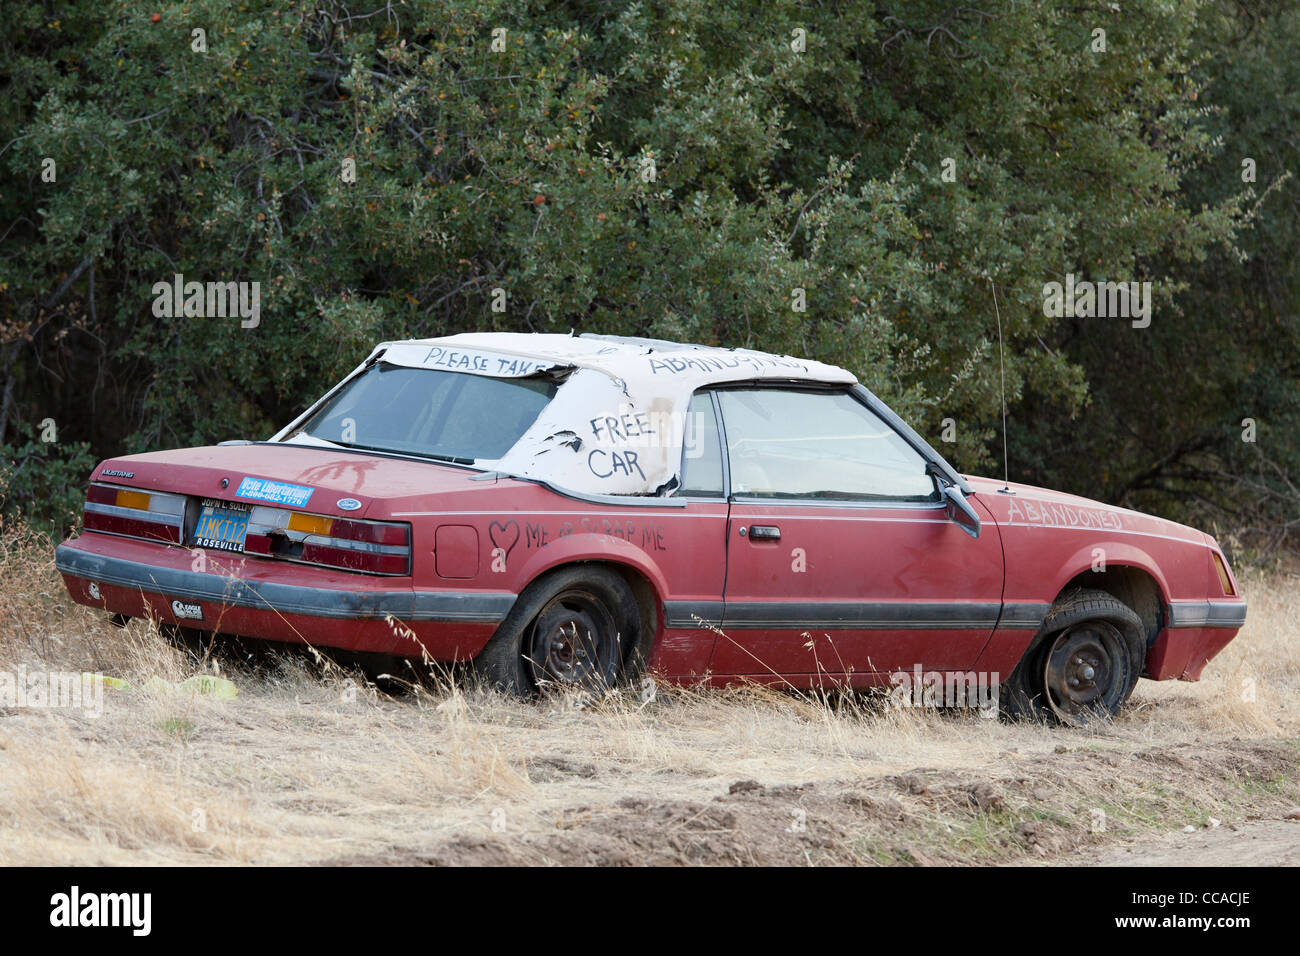 Abandoned car - USA - Stock Image